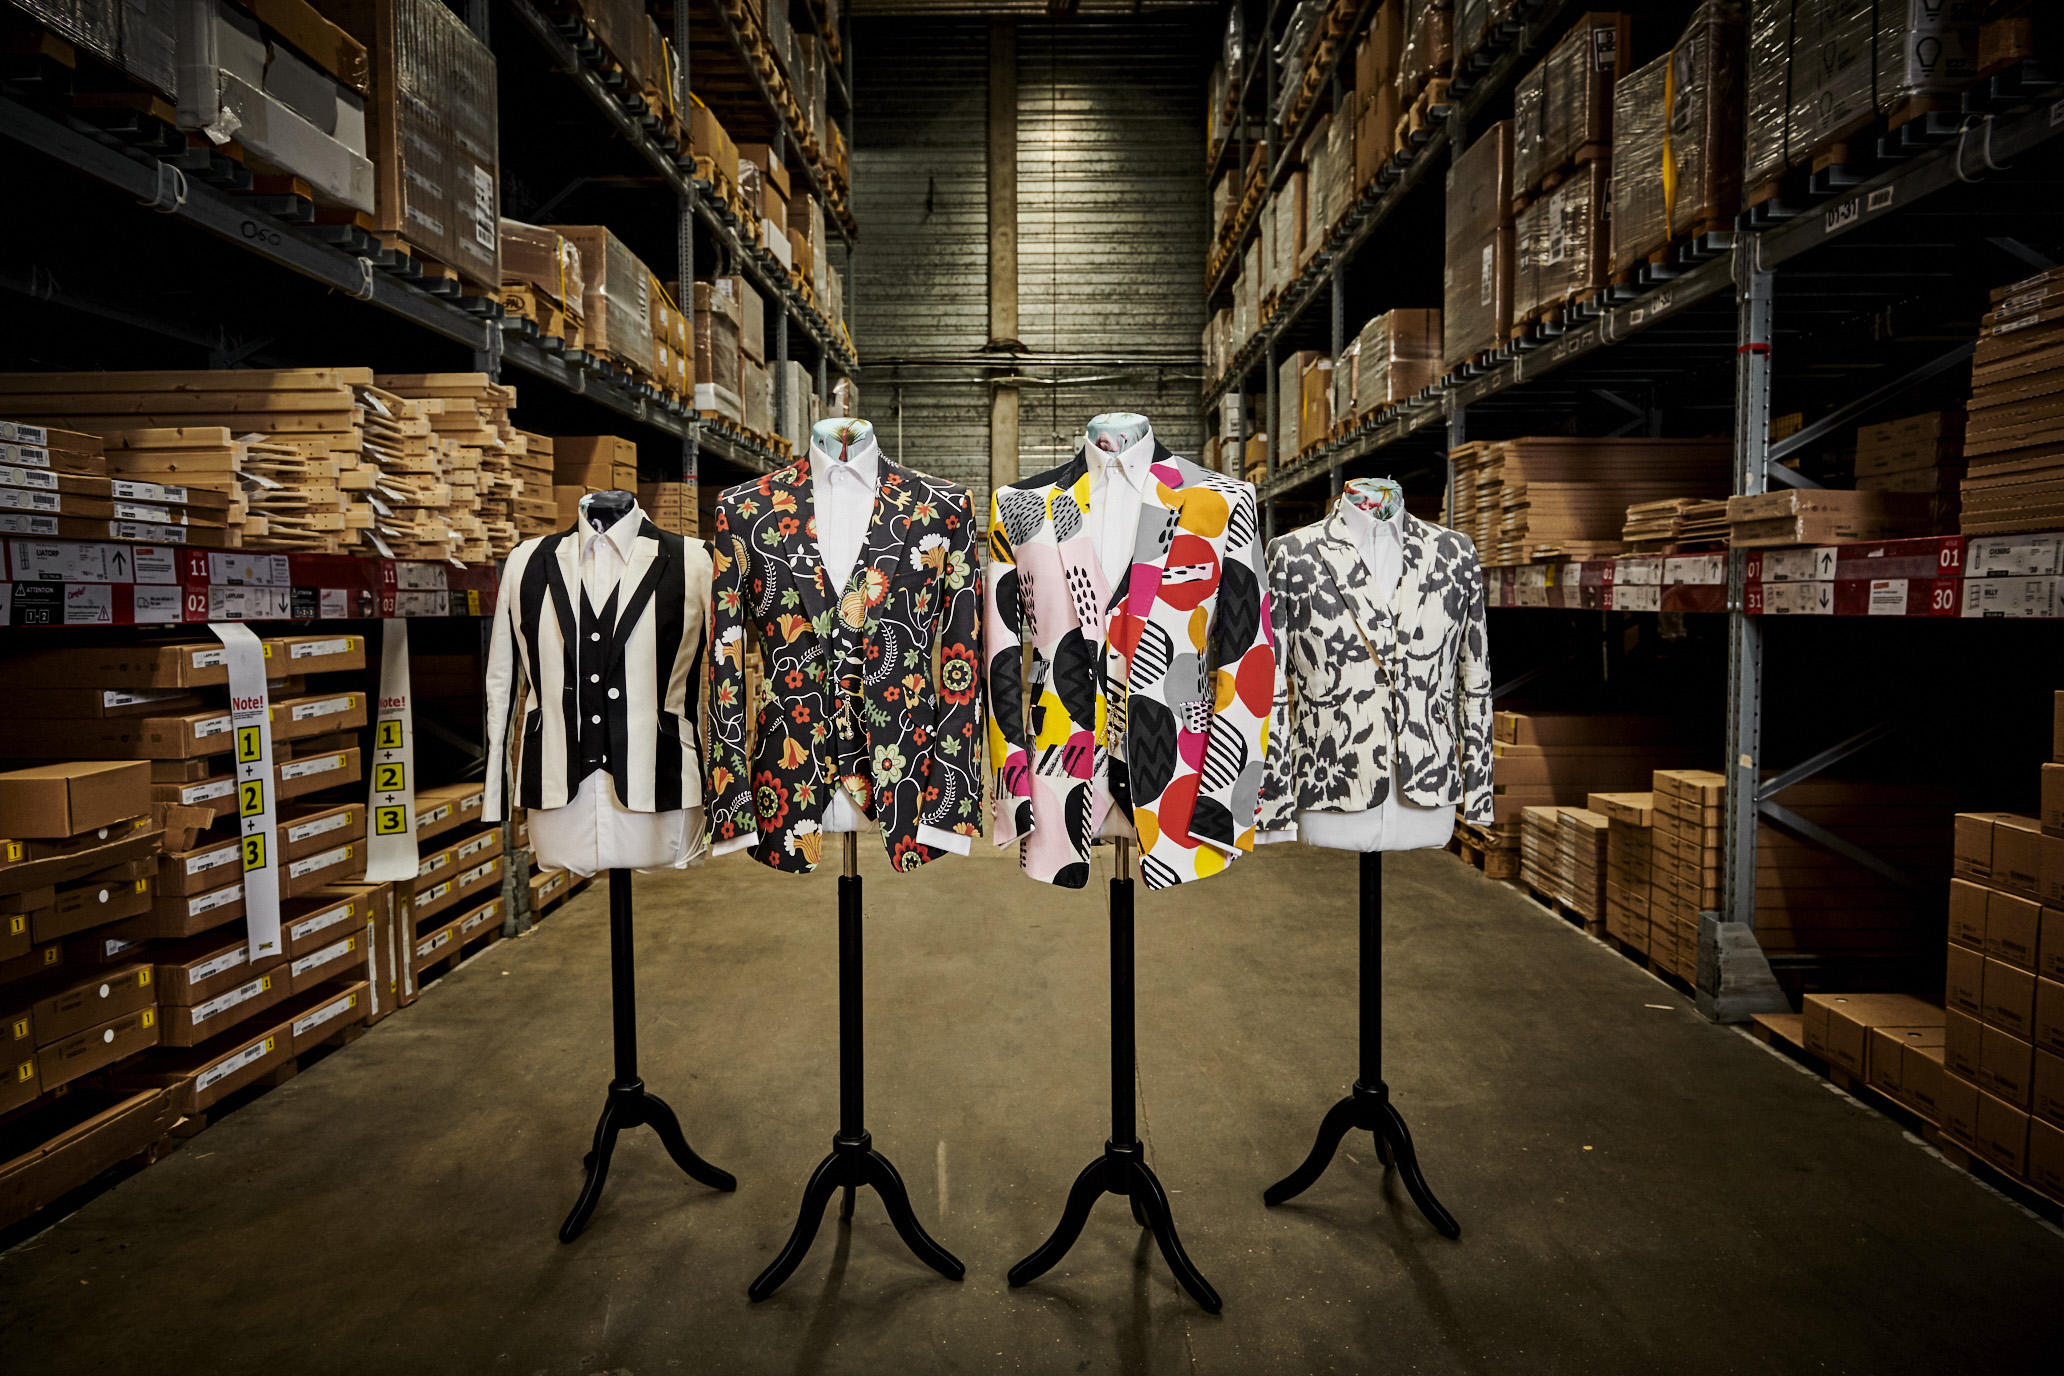 b11bd13935 IKEA has partnered with Savile Row tailor William Hunt to bring these ideas  to life